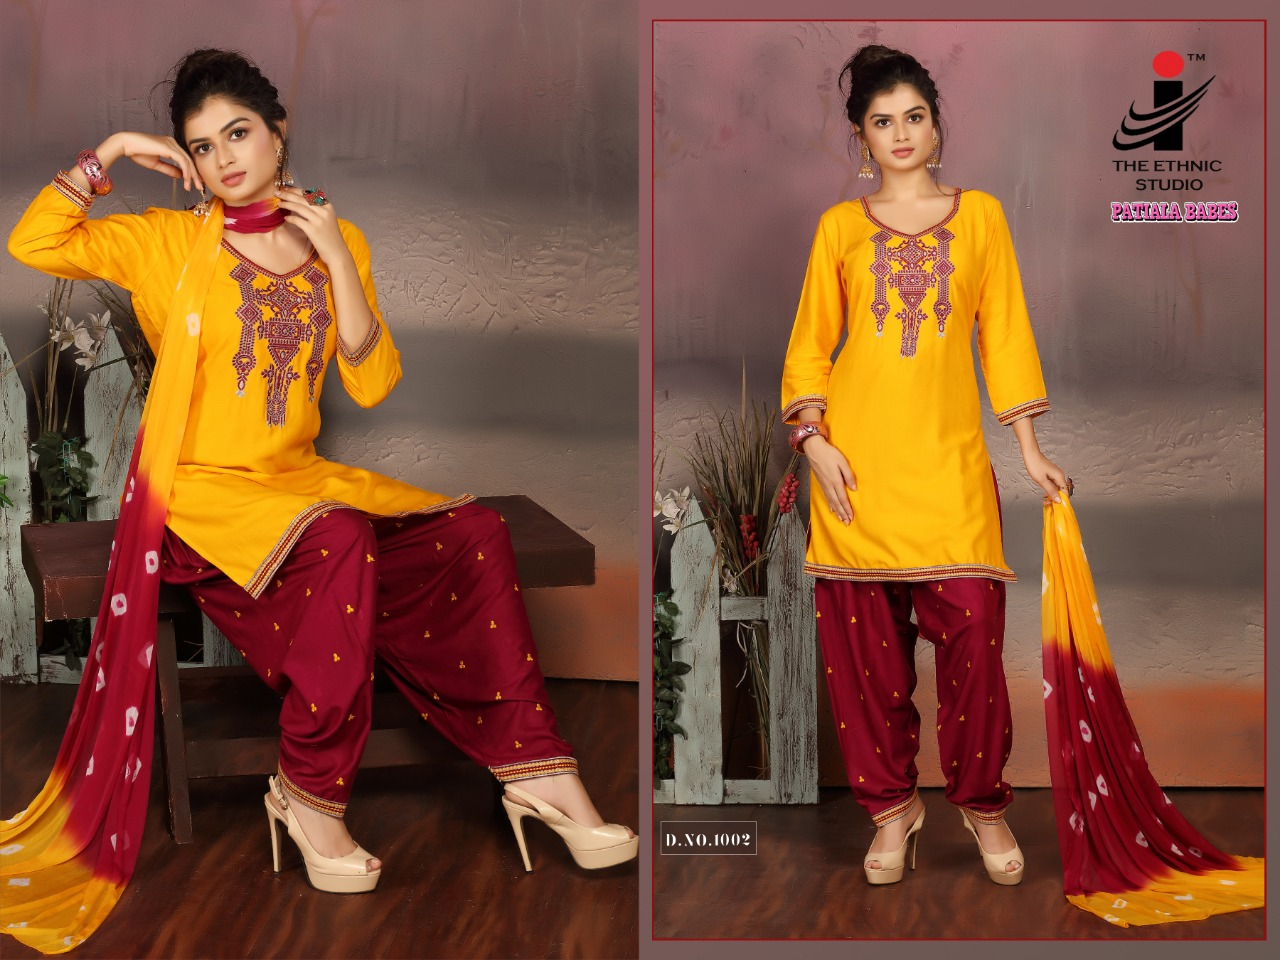 The Ethnic Studio Patiyala Babes collection 1